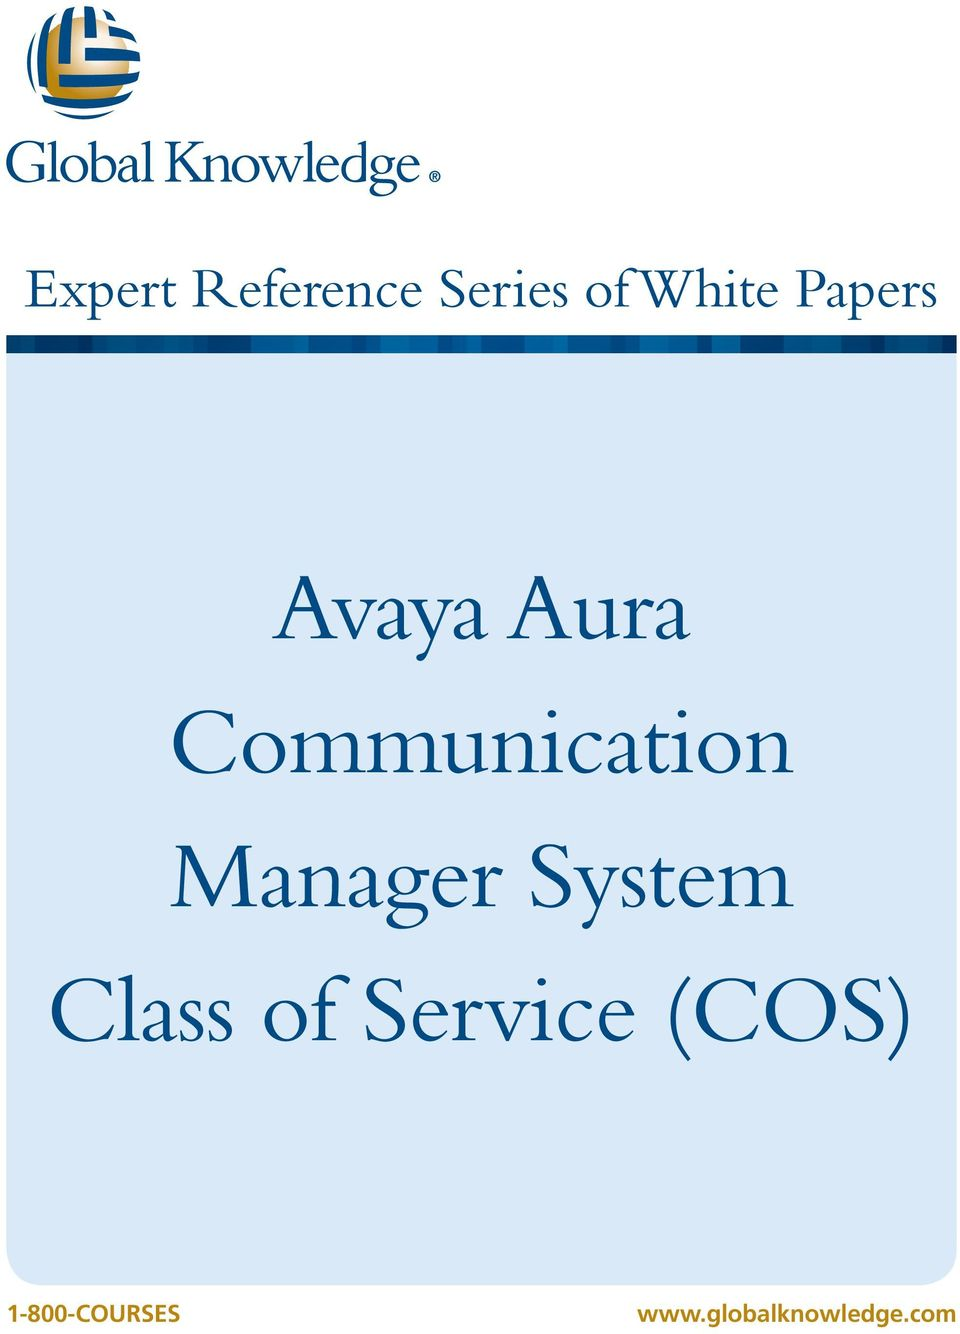 Manager System Class of Service